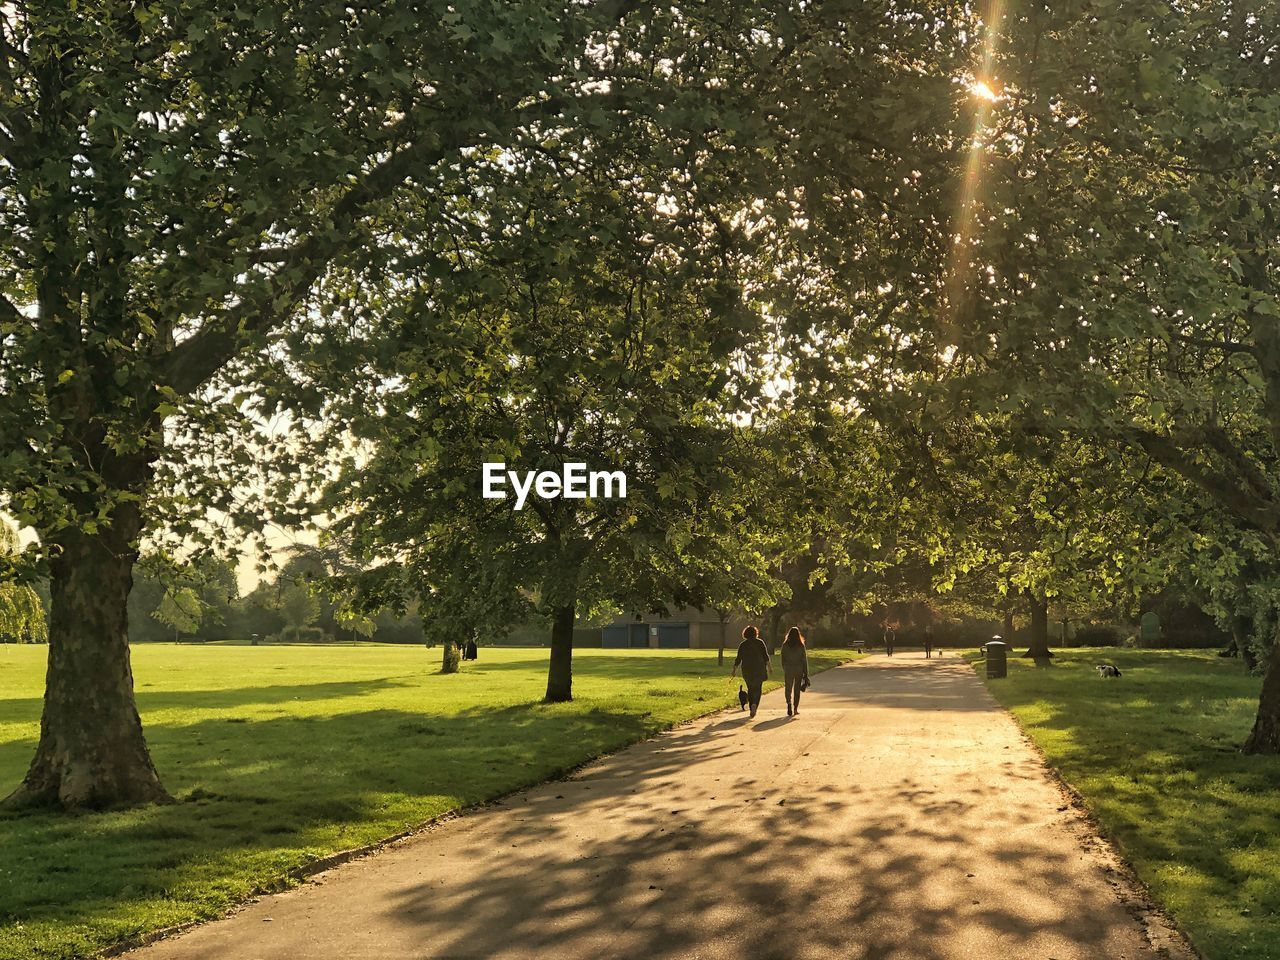 tree, plant, sunlight, nature, growth, real people, green color, day, shadow, park, two people, beauty in nature, footpath, walking, park - man made space, full length, people, rear view, men, grass, outdoors